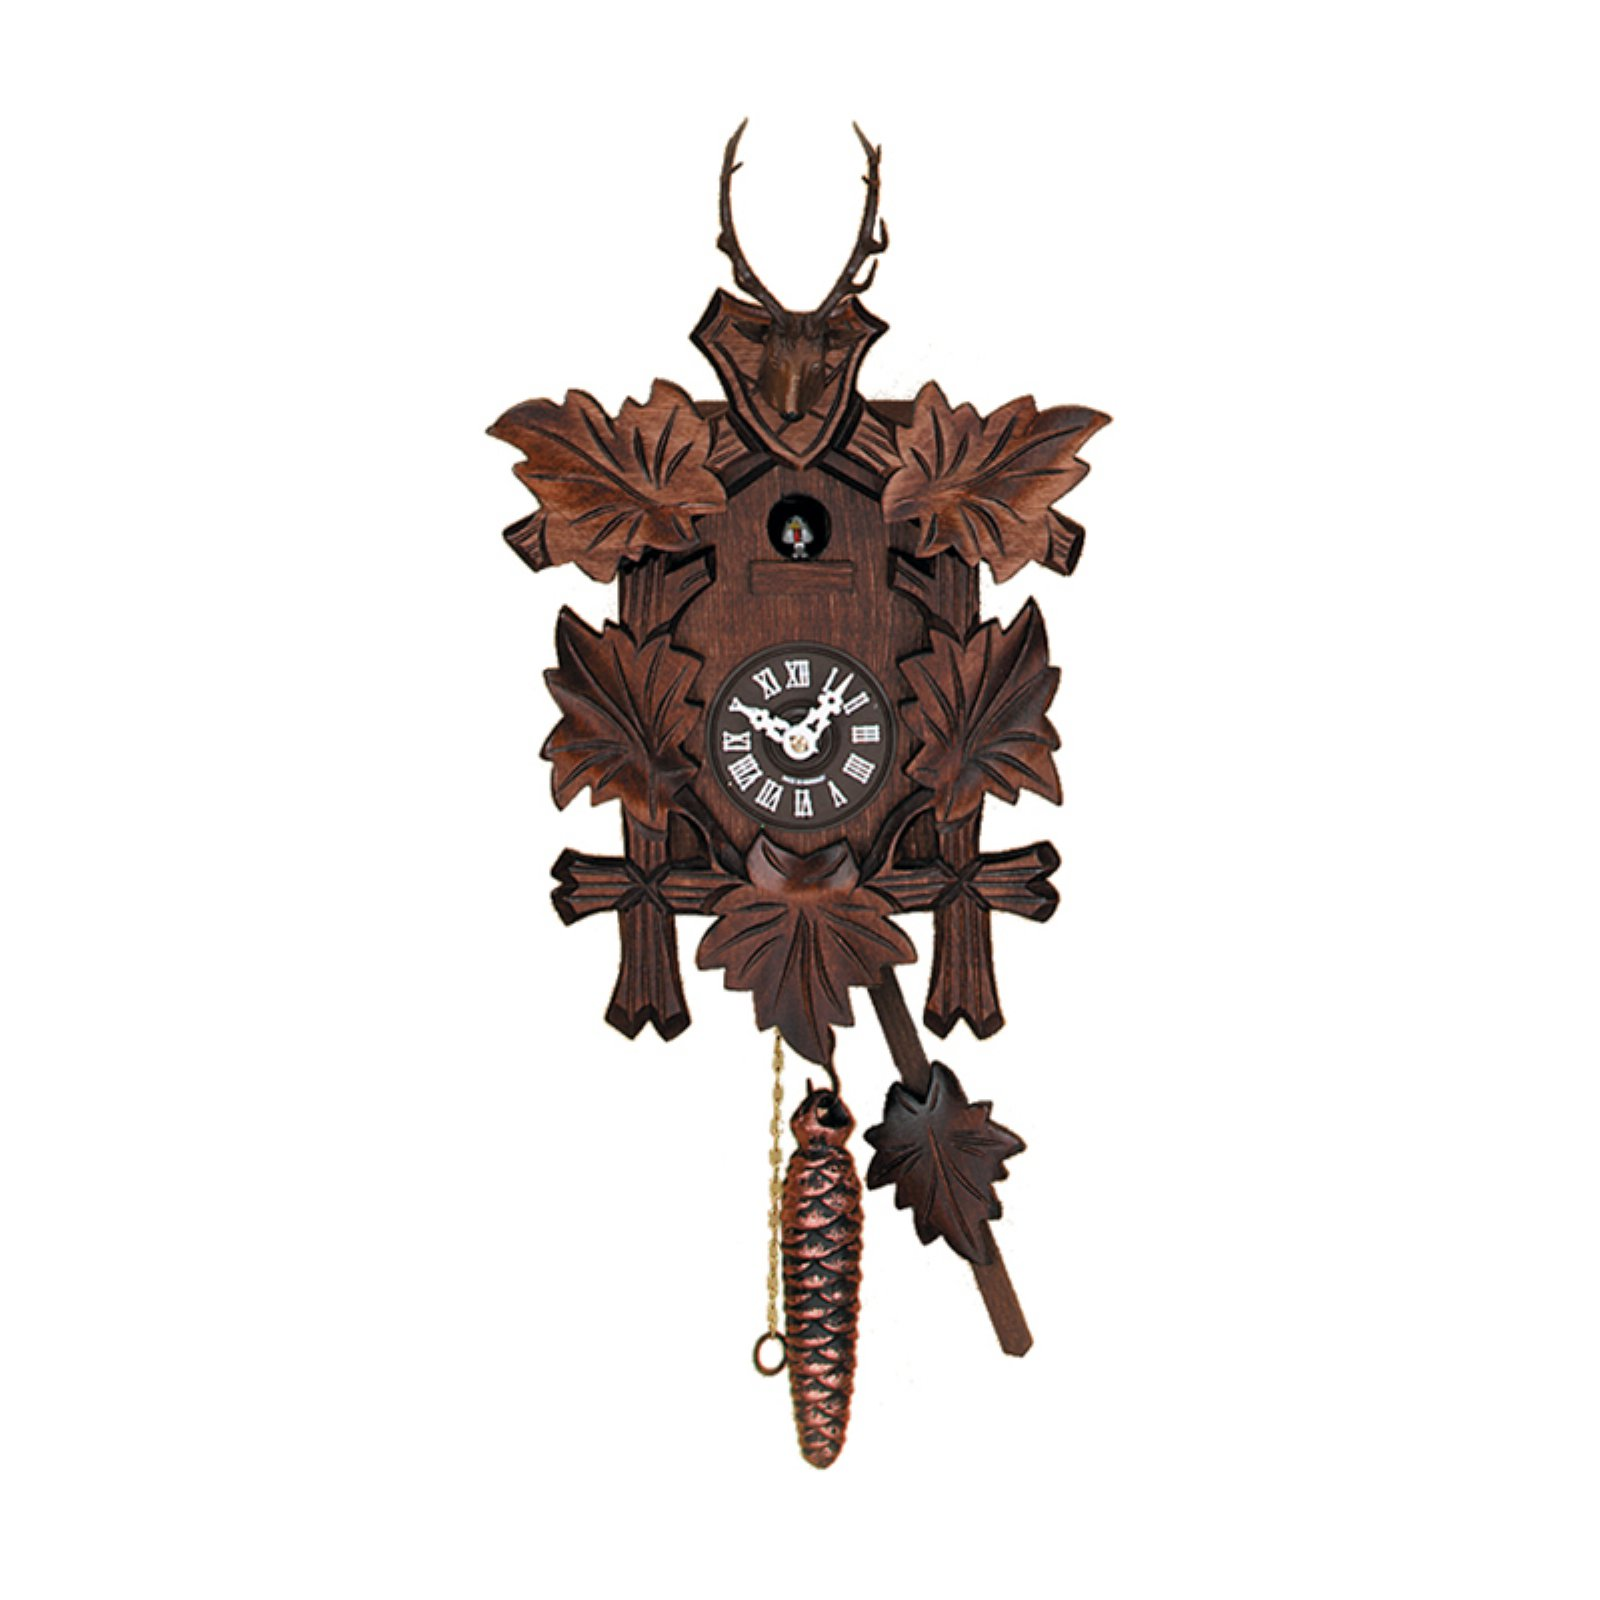 River City Clocks 991-11 with Five Leaves and Buck Hunter's Quarter Call Cuckoo Clock by River City Clocks